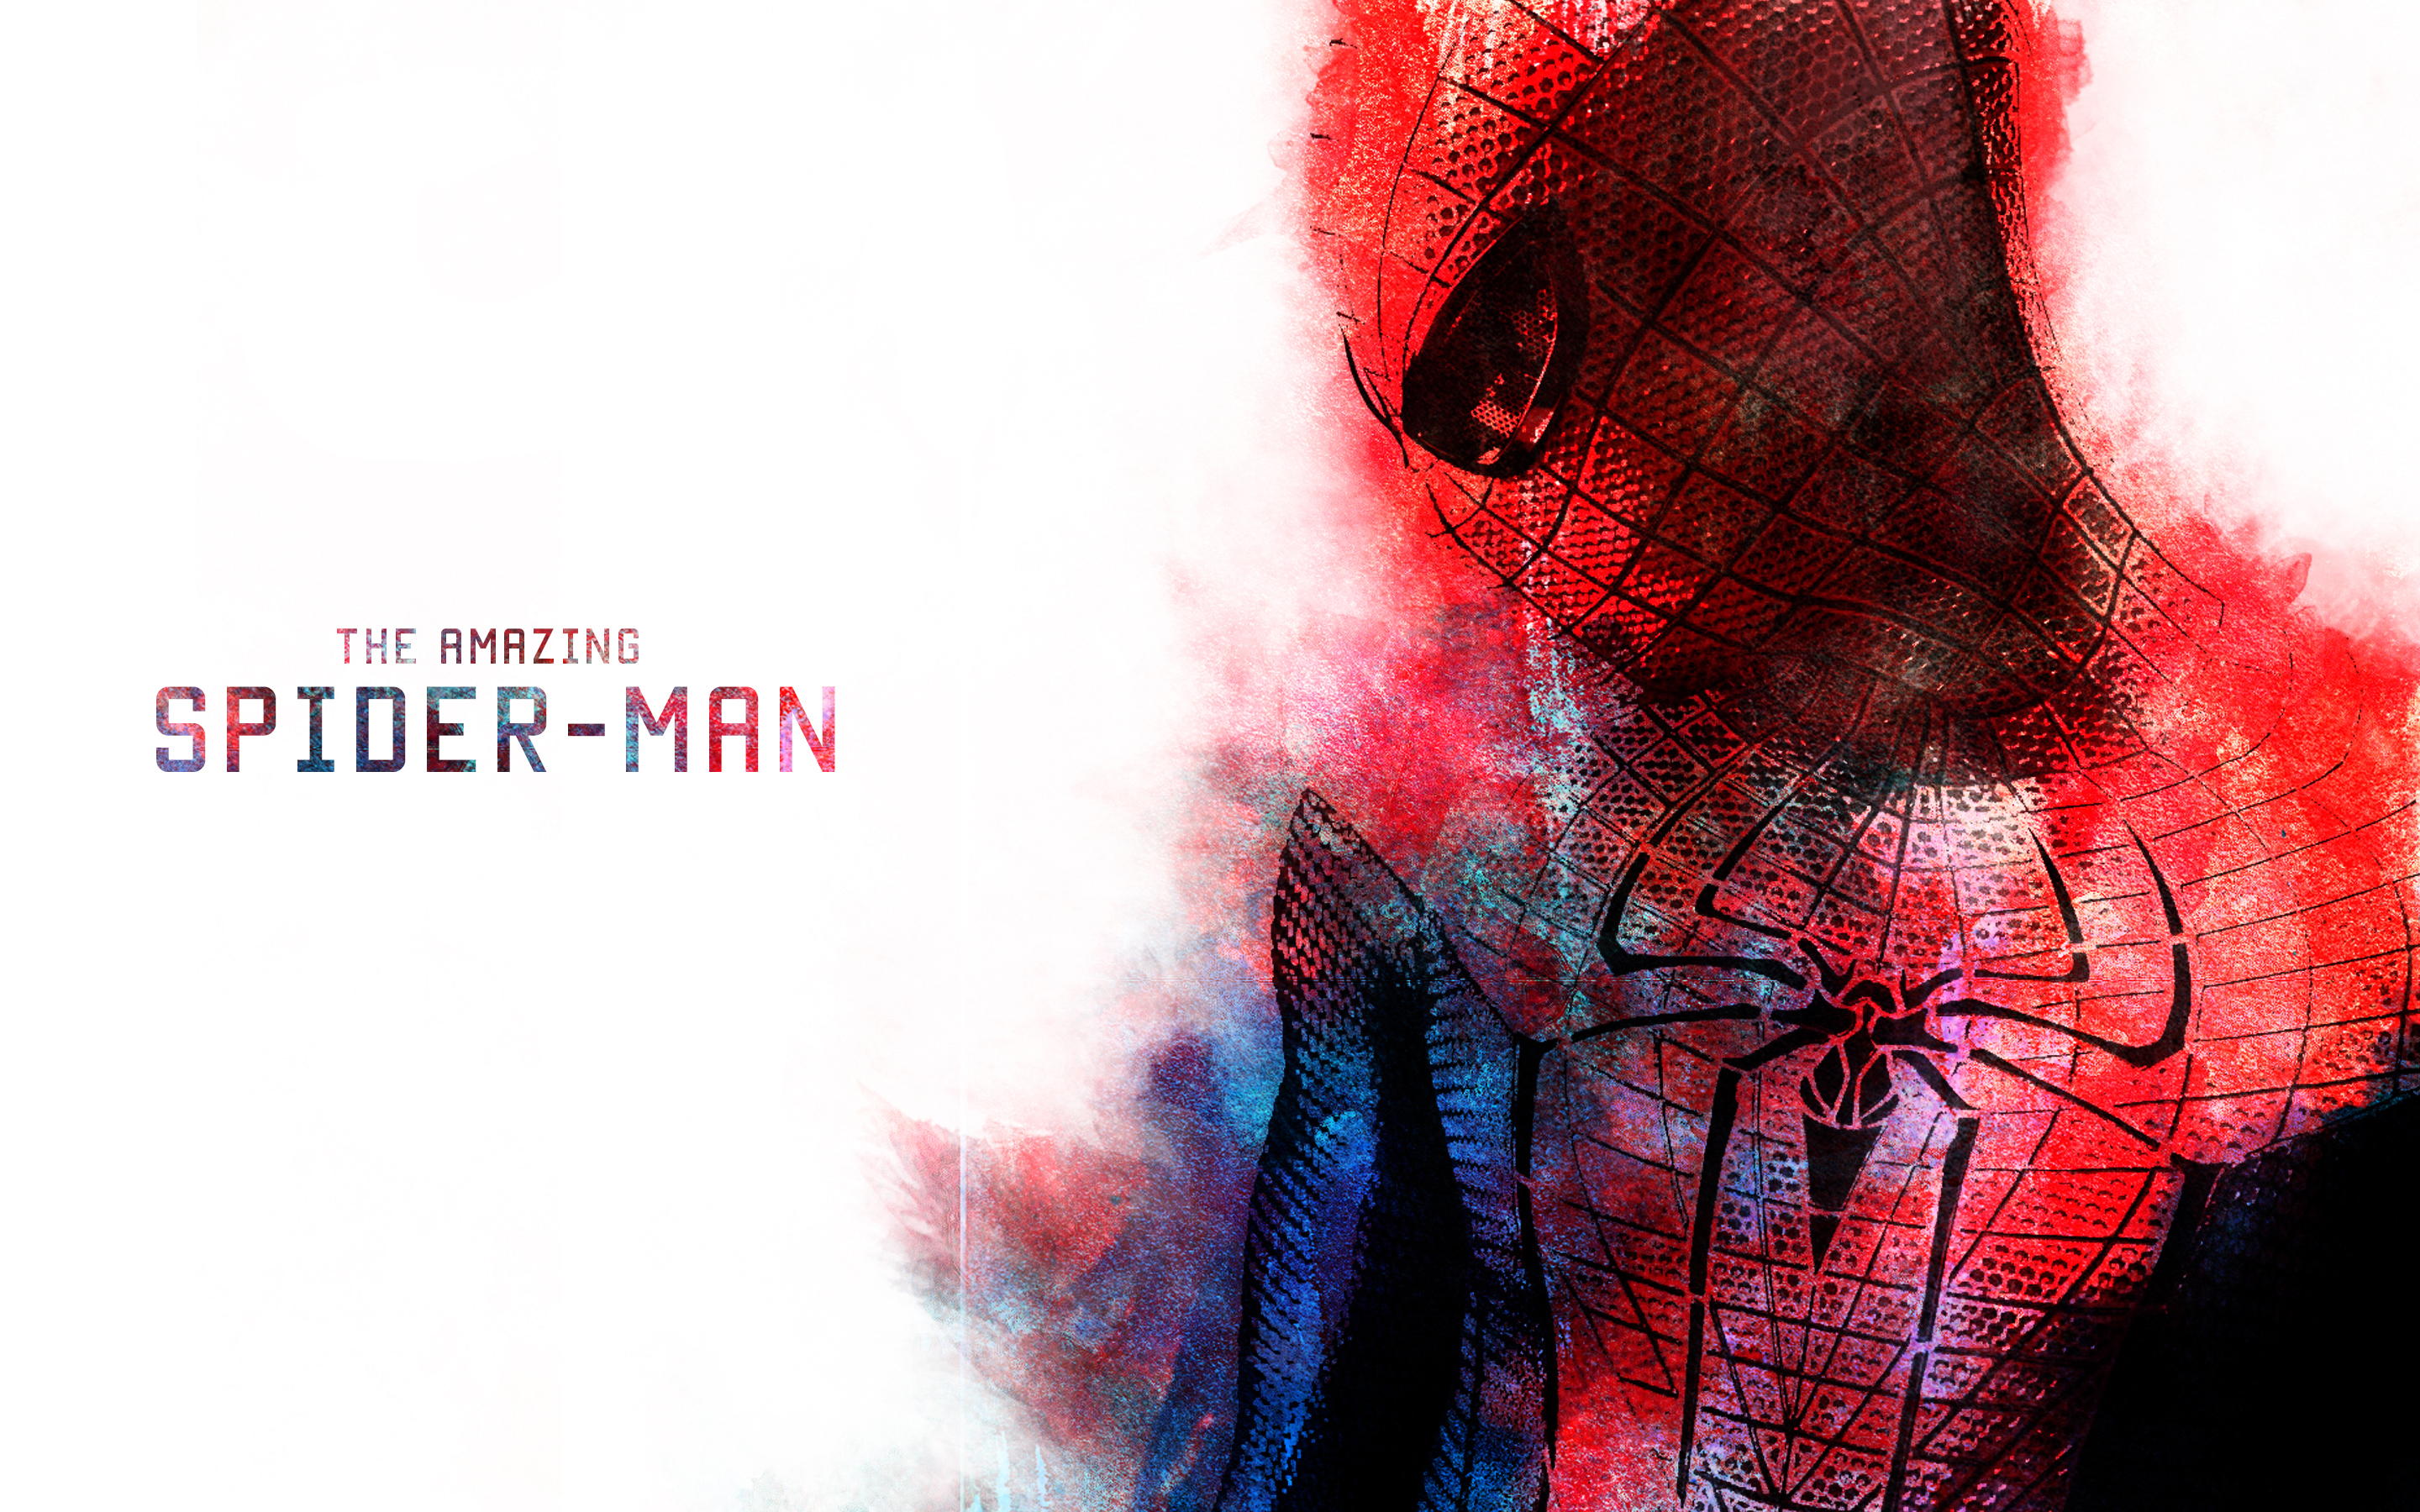 Amazing Spider Man HD Wallpaper in High Resolution at Movies Wallpaper 2880x1800